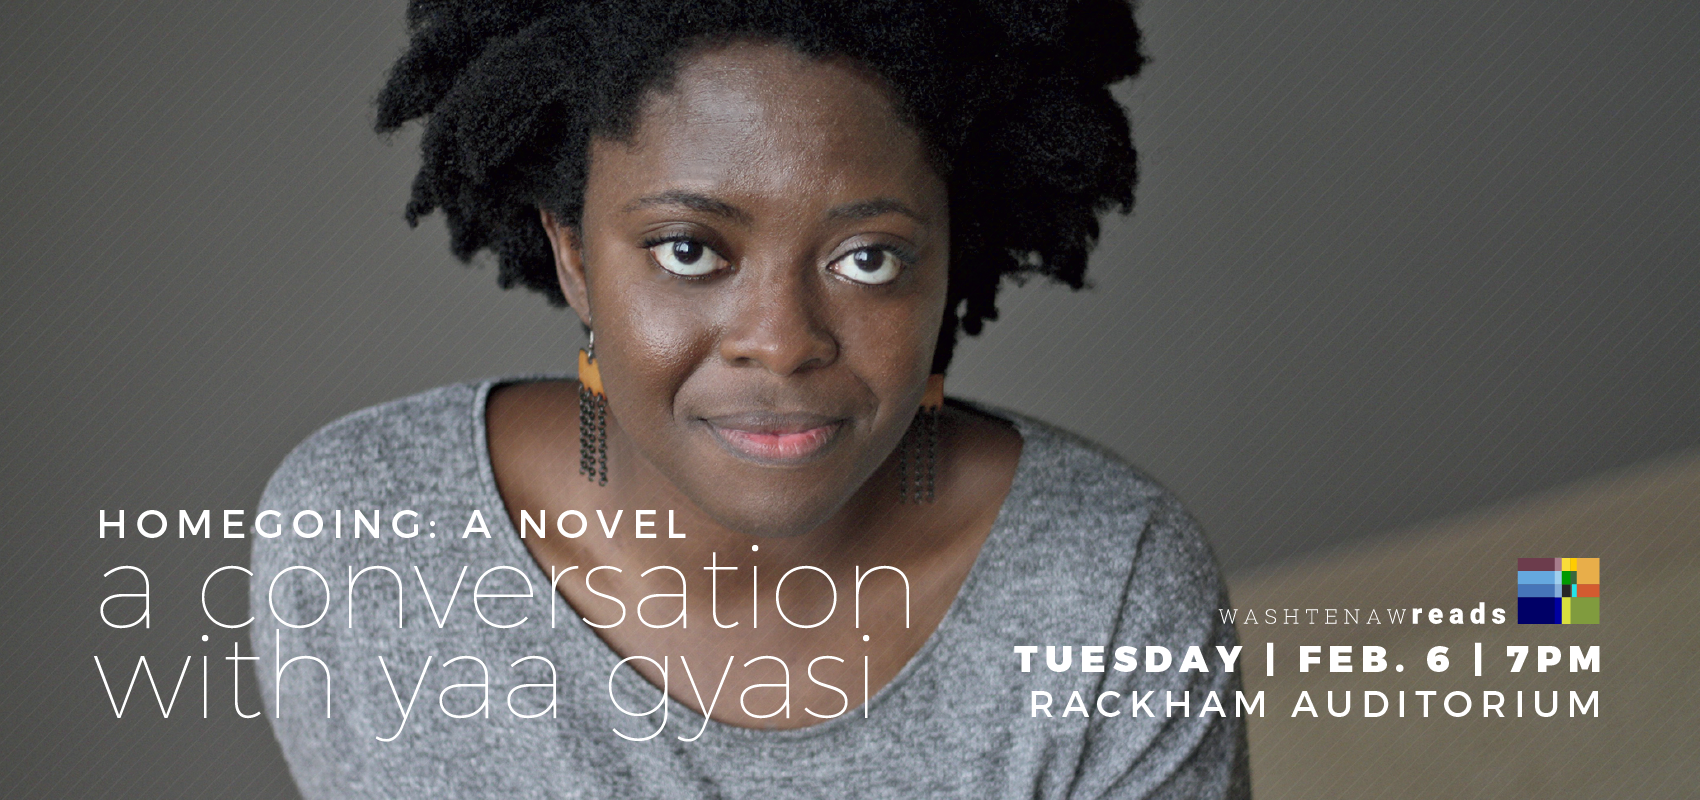 Washtenaw Reads Homegoing by Yaa Gyasi. .